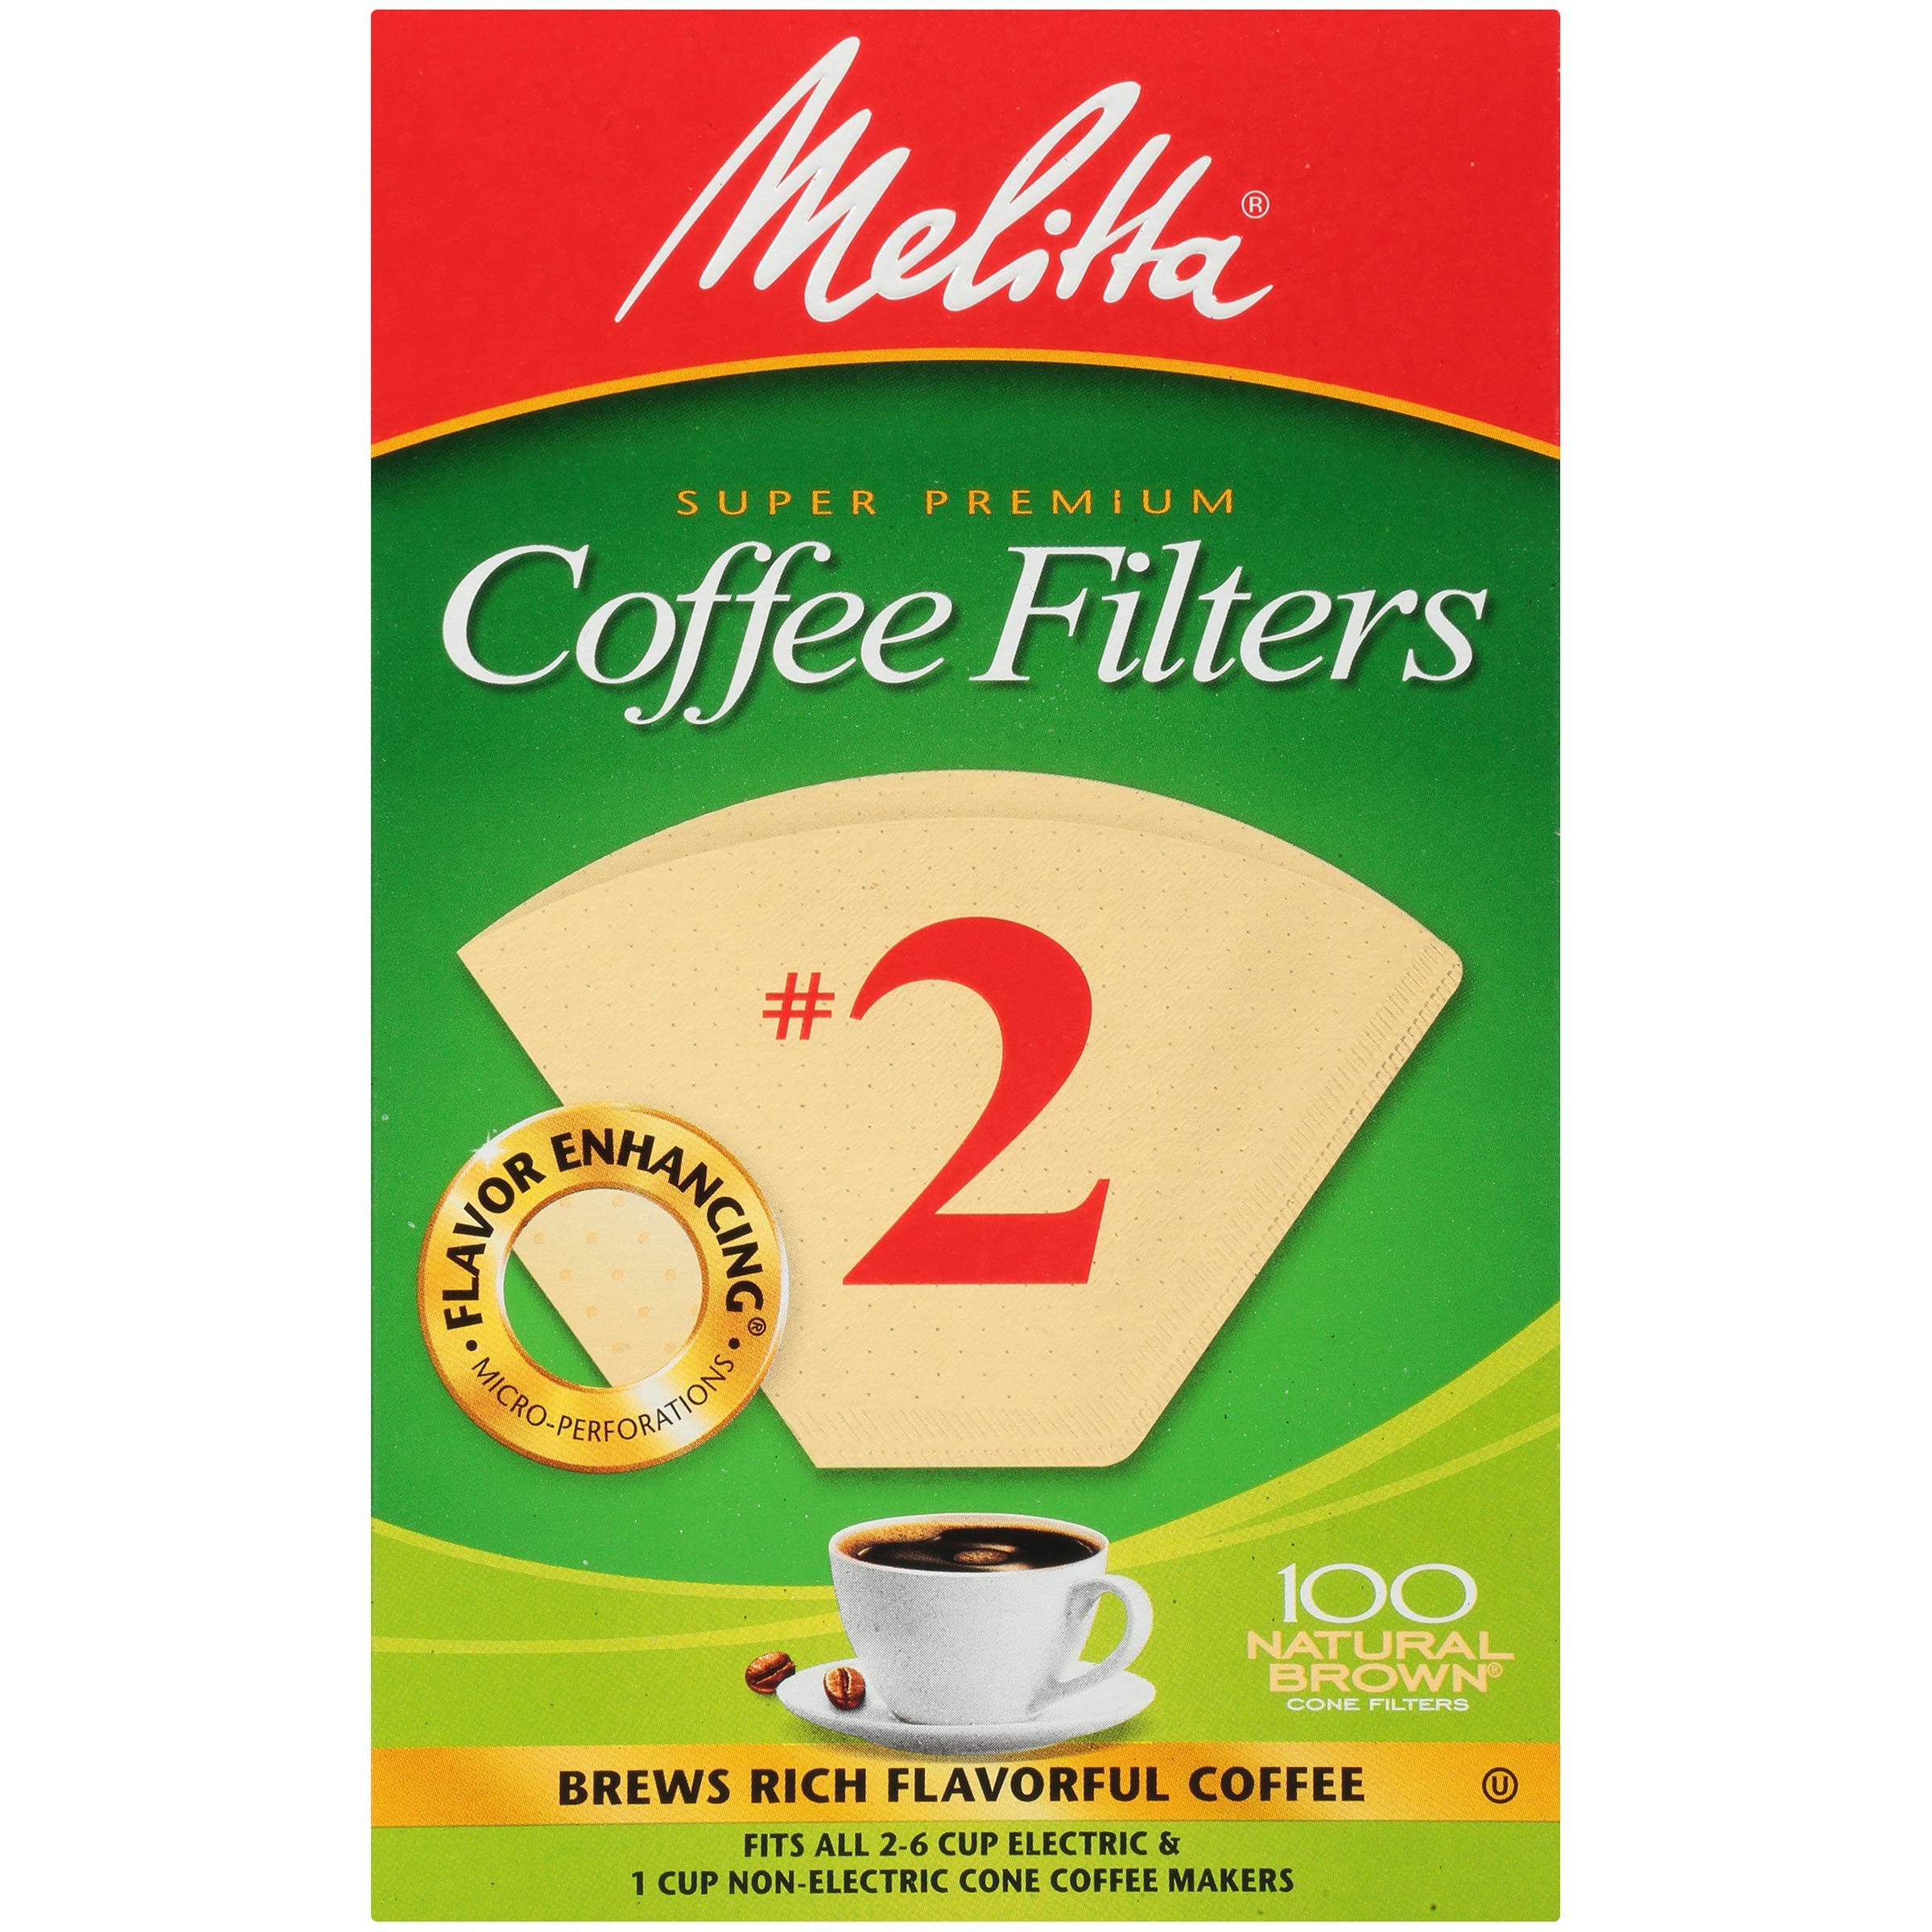 Melitta (63216C) #2 Super Premium Cone Coffee Filters, Natural Brown, 100 Count (Pack of 6) Replacement Coffee Maker Filters